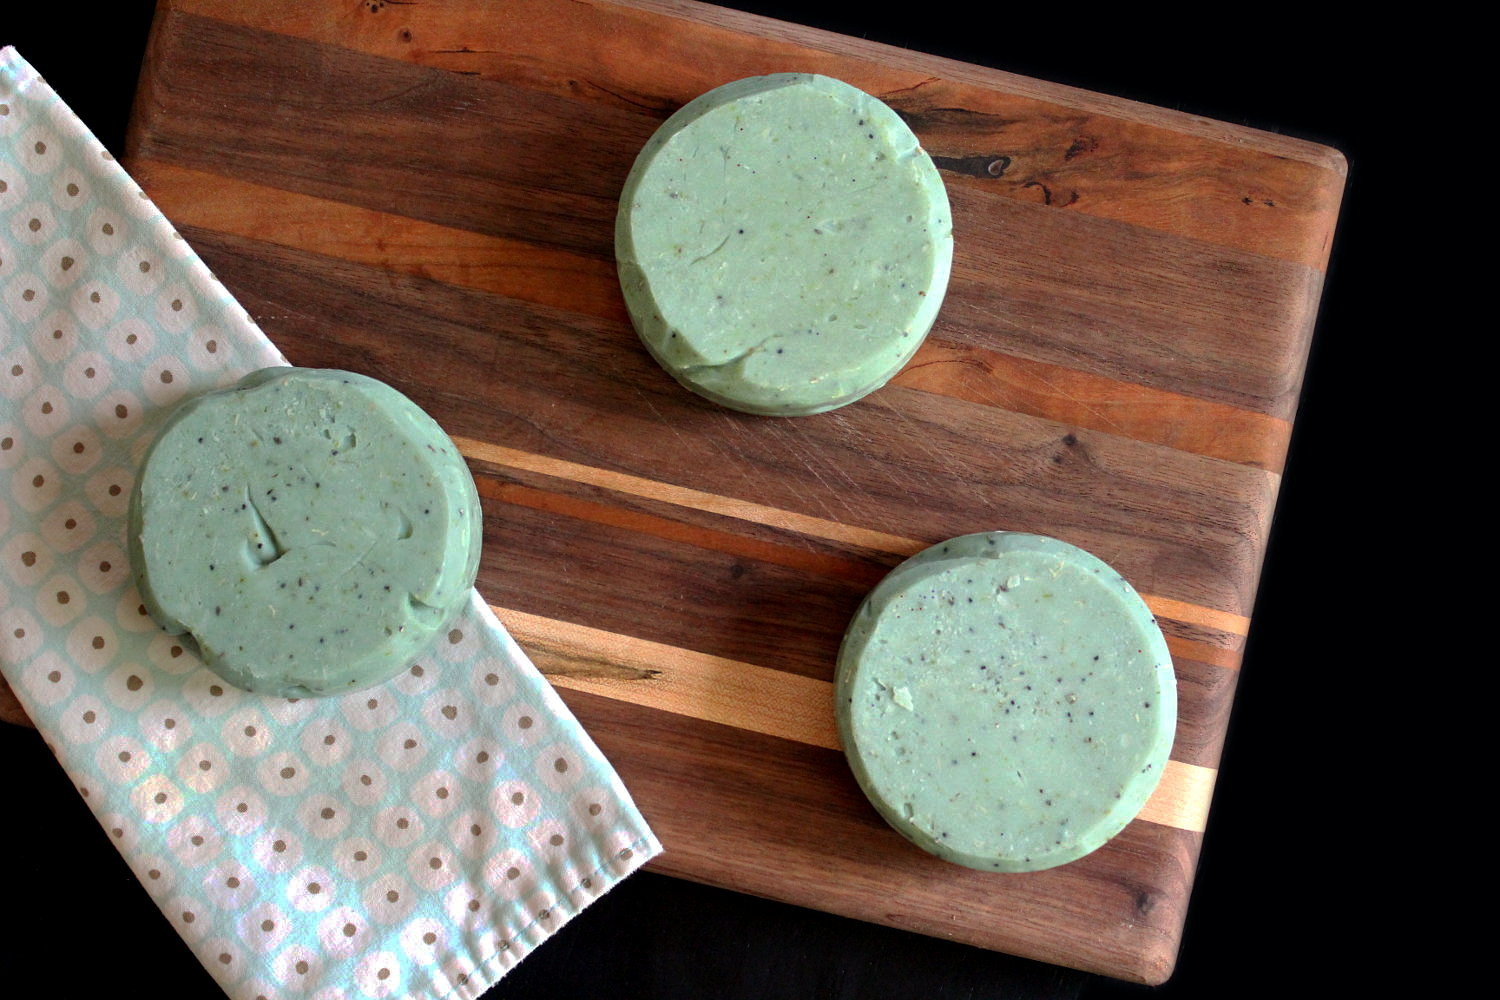 Natural gardeners soap recipe that's not just for gardeners! It doesn't have to be gardening season for you to enjoy this natural gardeners soap recipe. In fact, you don't even need to be a gardener at all! Formulated to quickly and easily wash away tough dirt and grime, you'll find that this natural gardeners soap is also a great option for mechanics, artists and kindergarten teachers. So if you know how to get good and dirty, then this soap is for you.